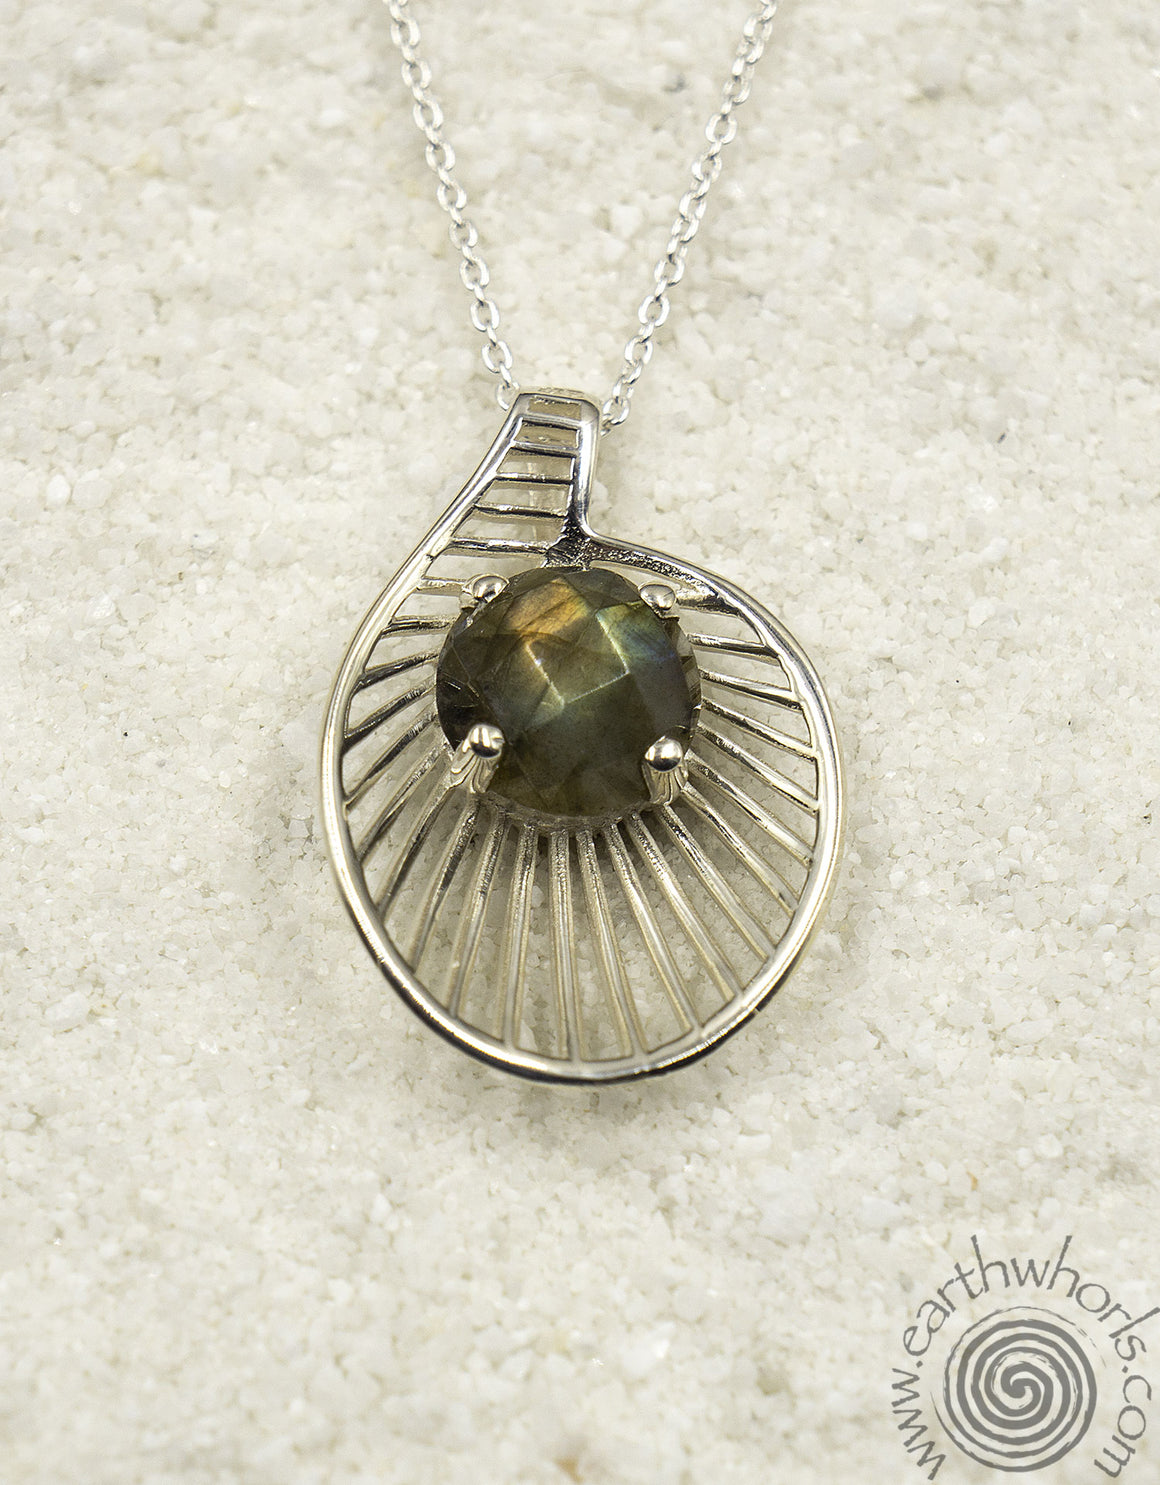 Sterling Silver & Moonstone Pendant Necklace - EarthWhorls, LLC